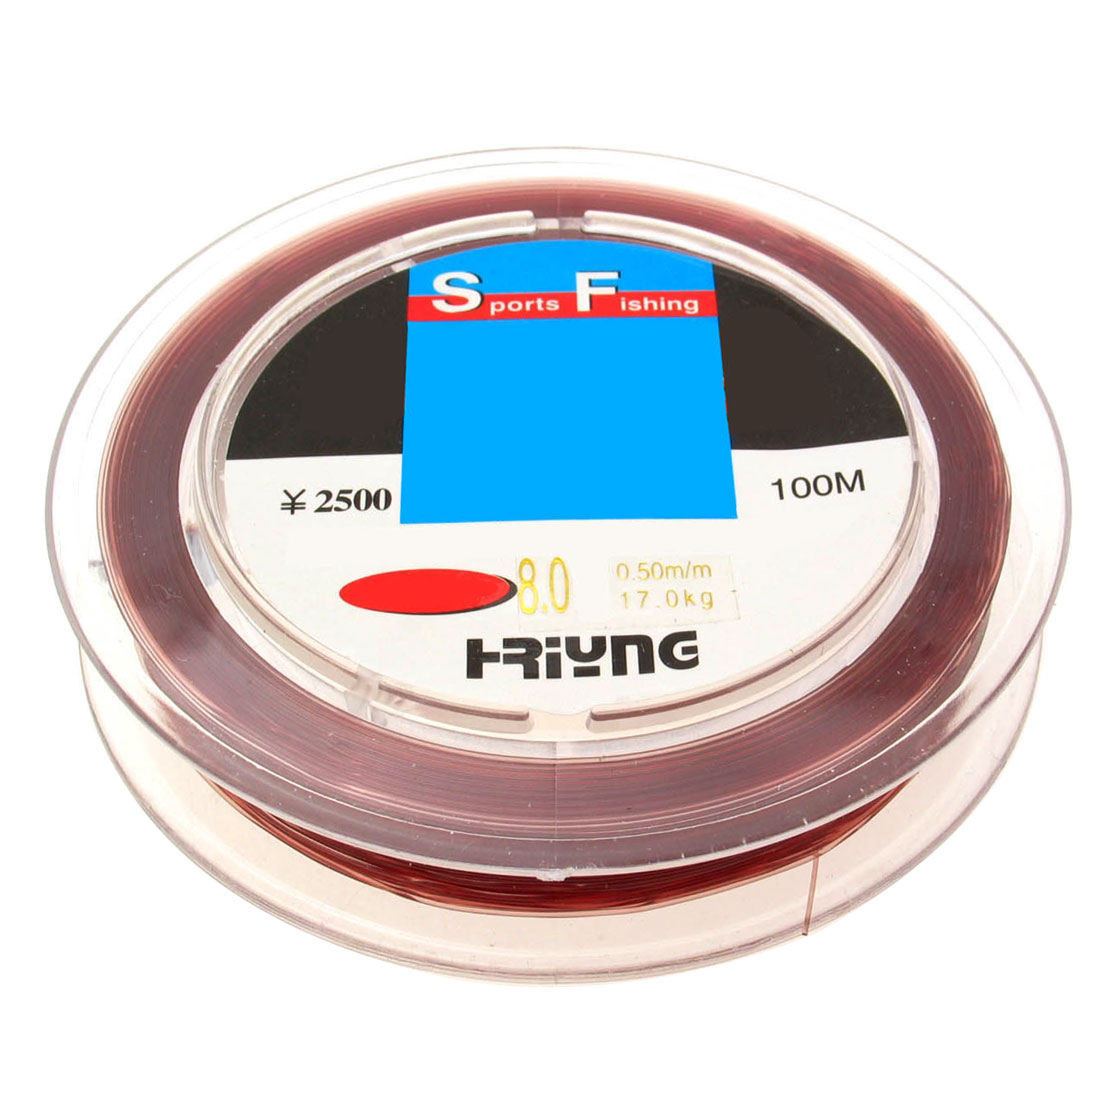 Fish Fishing Spool Line 100m Size 0.37mm